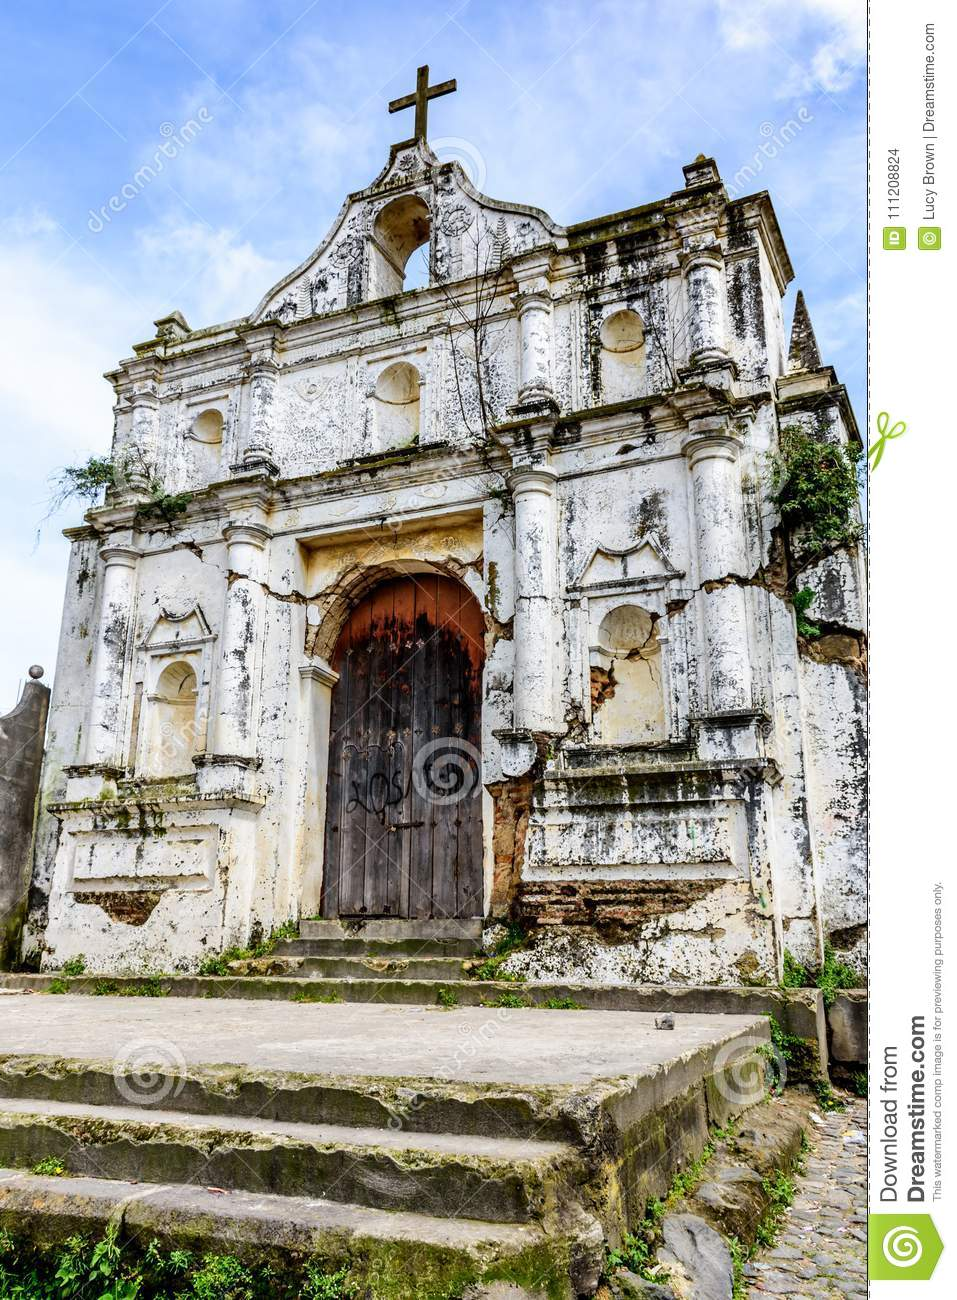 Ruined church, Santa Maria de Jesus near Antigua, Guatemala